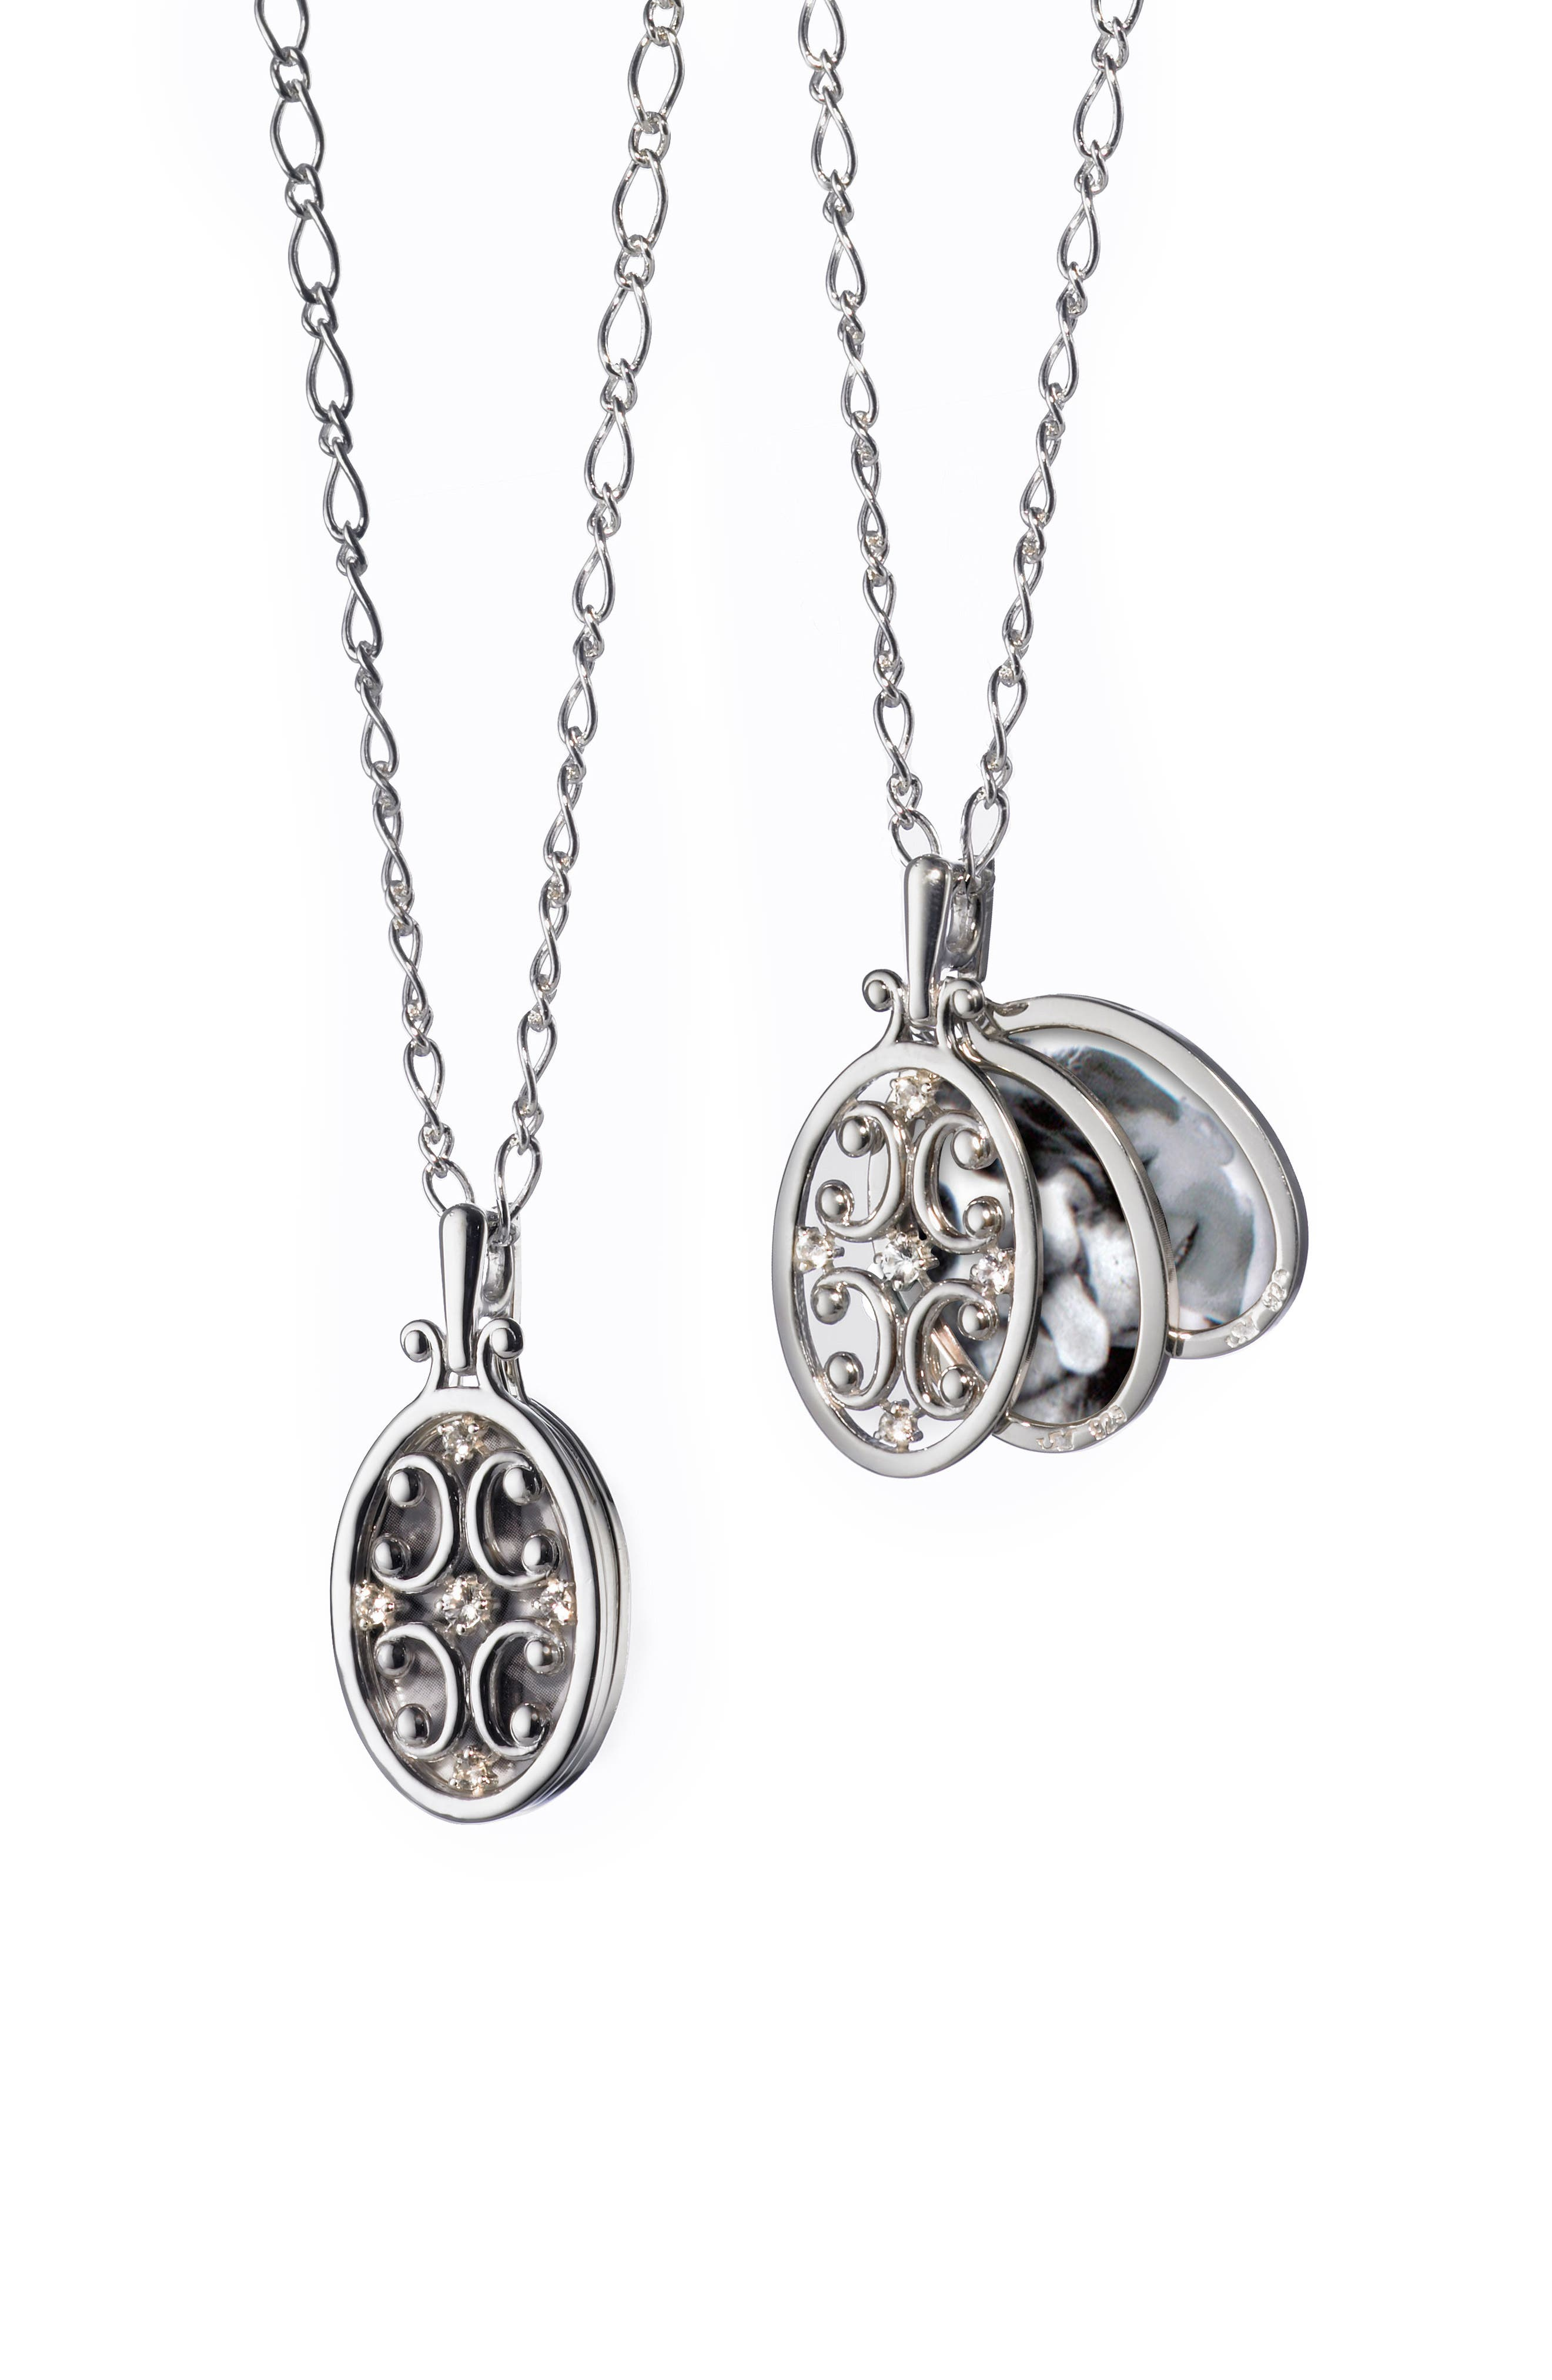 Scrollwork Locket Necklace,                         Main,                         color, Sterling Silver